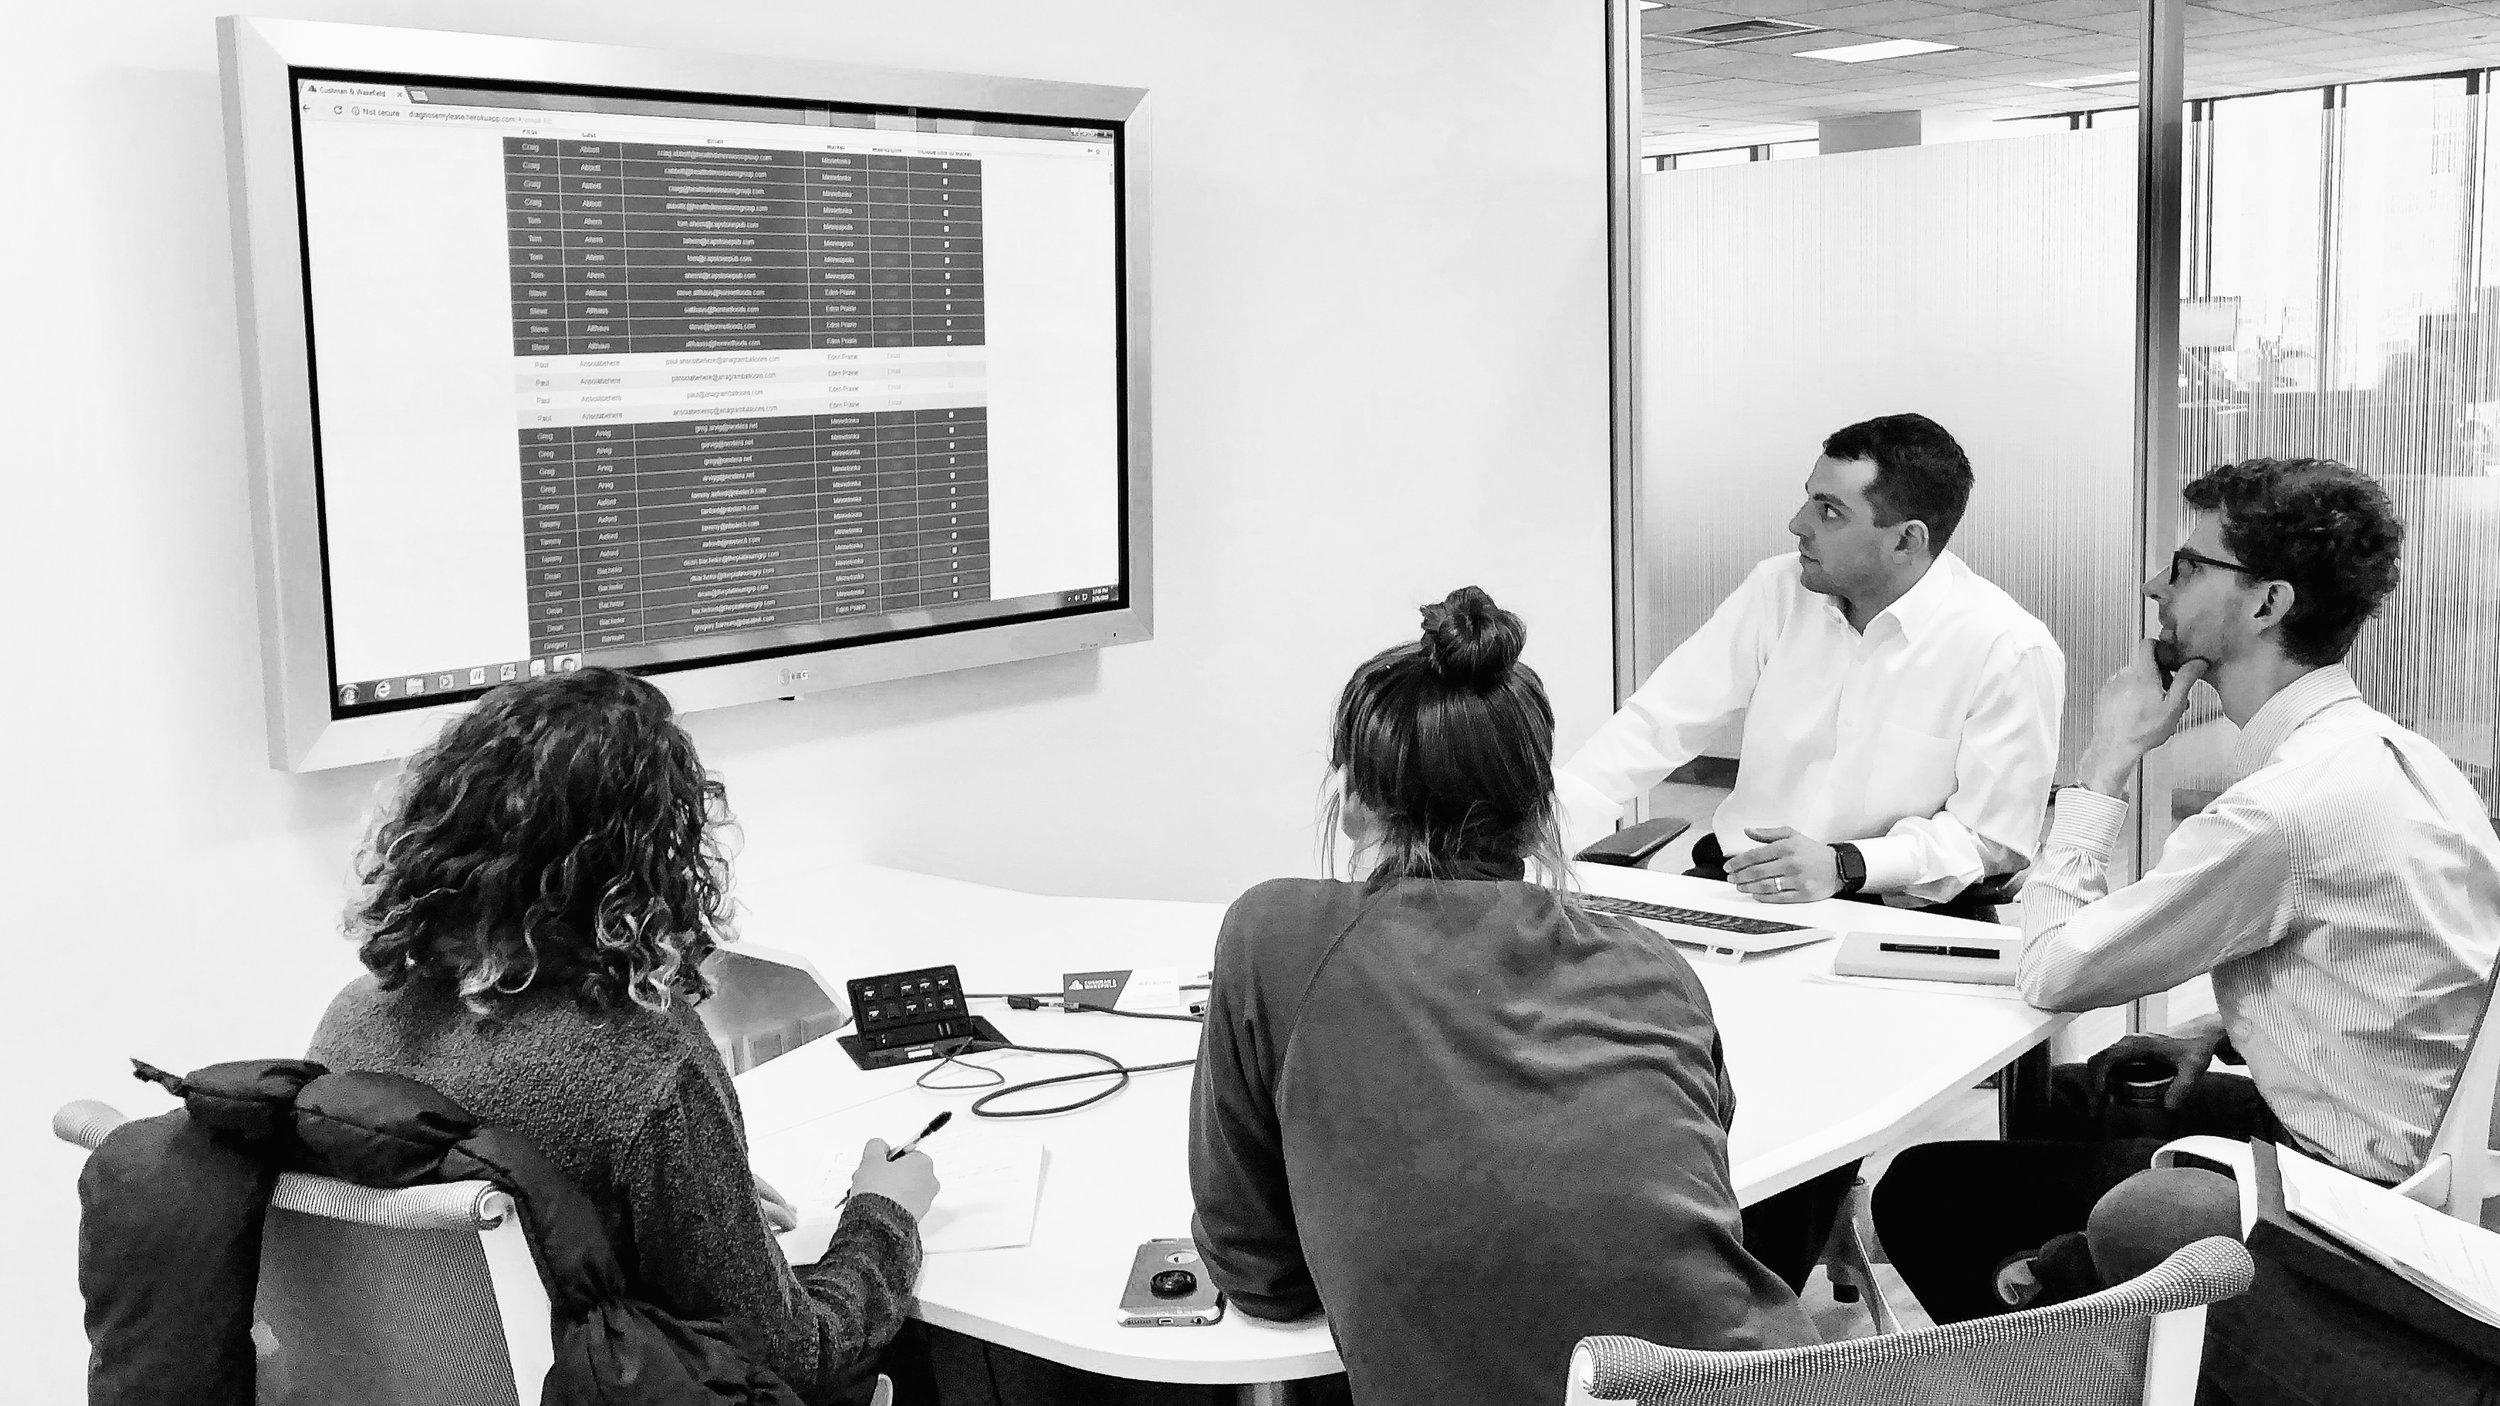 Dan shows us more about the site tools and their value to both brokers and potential clients.